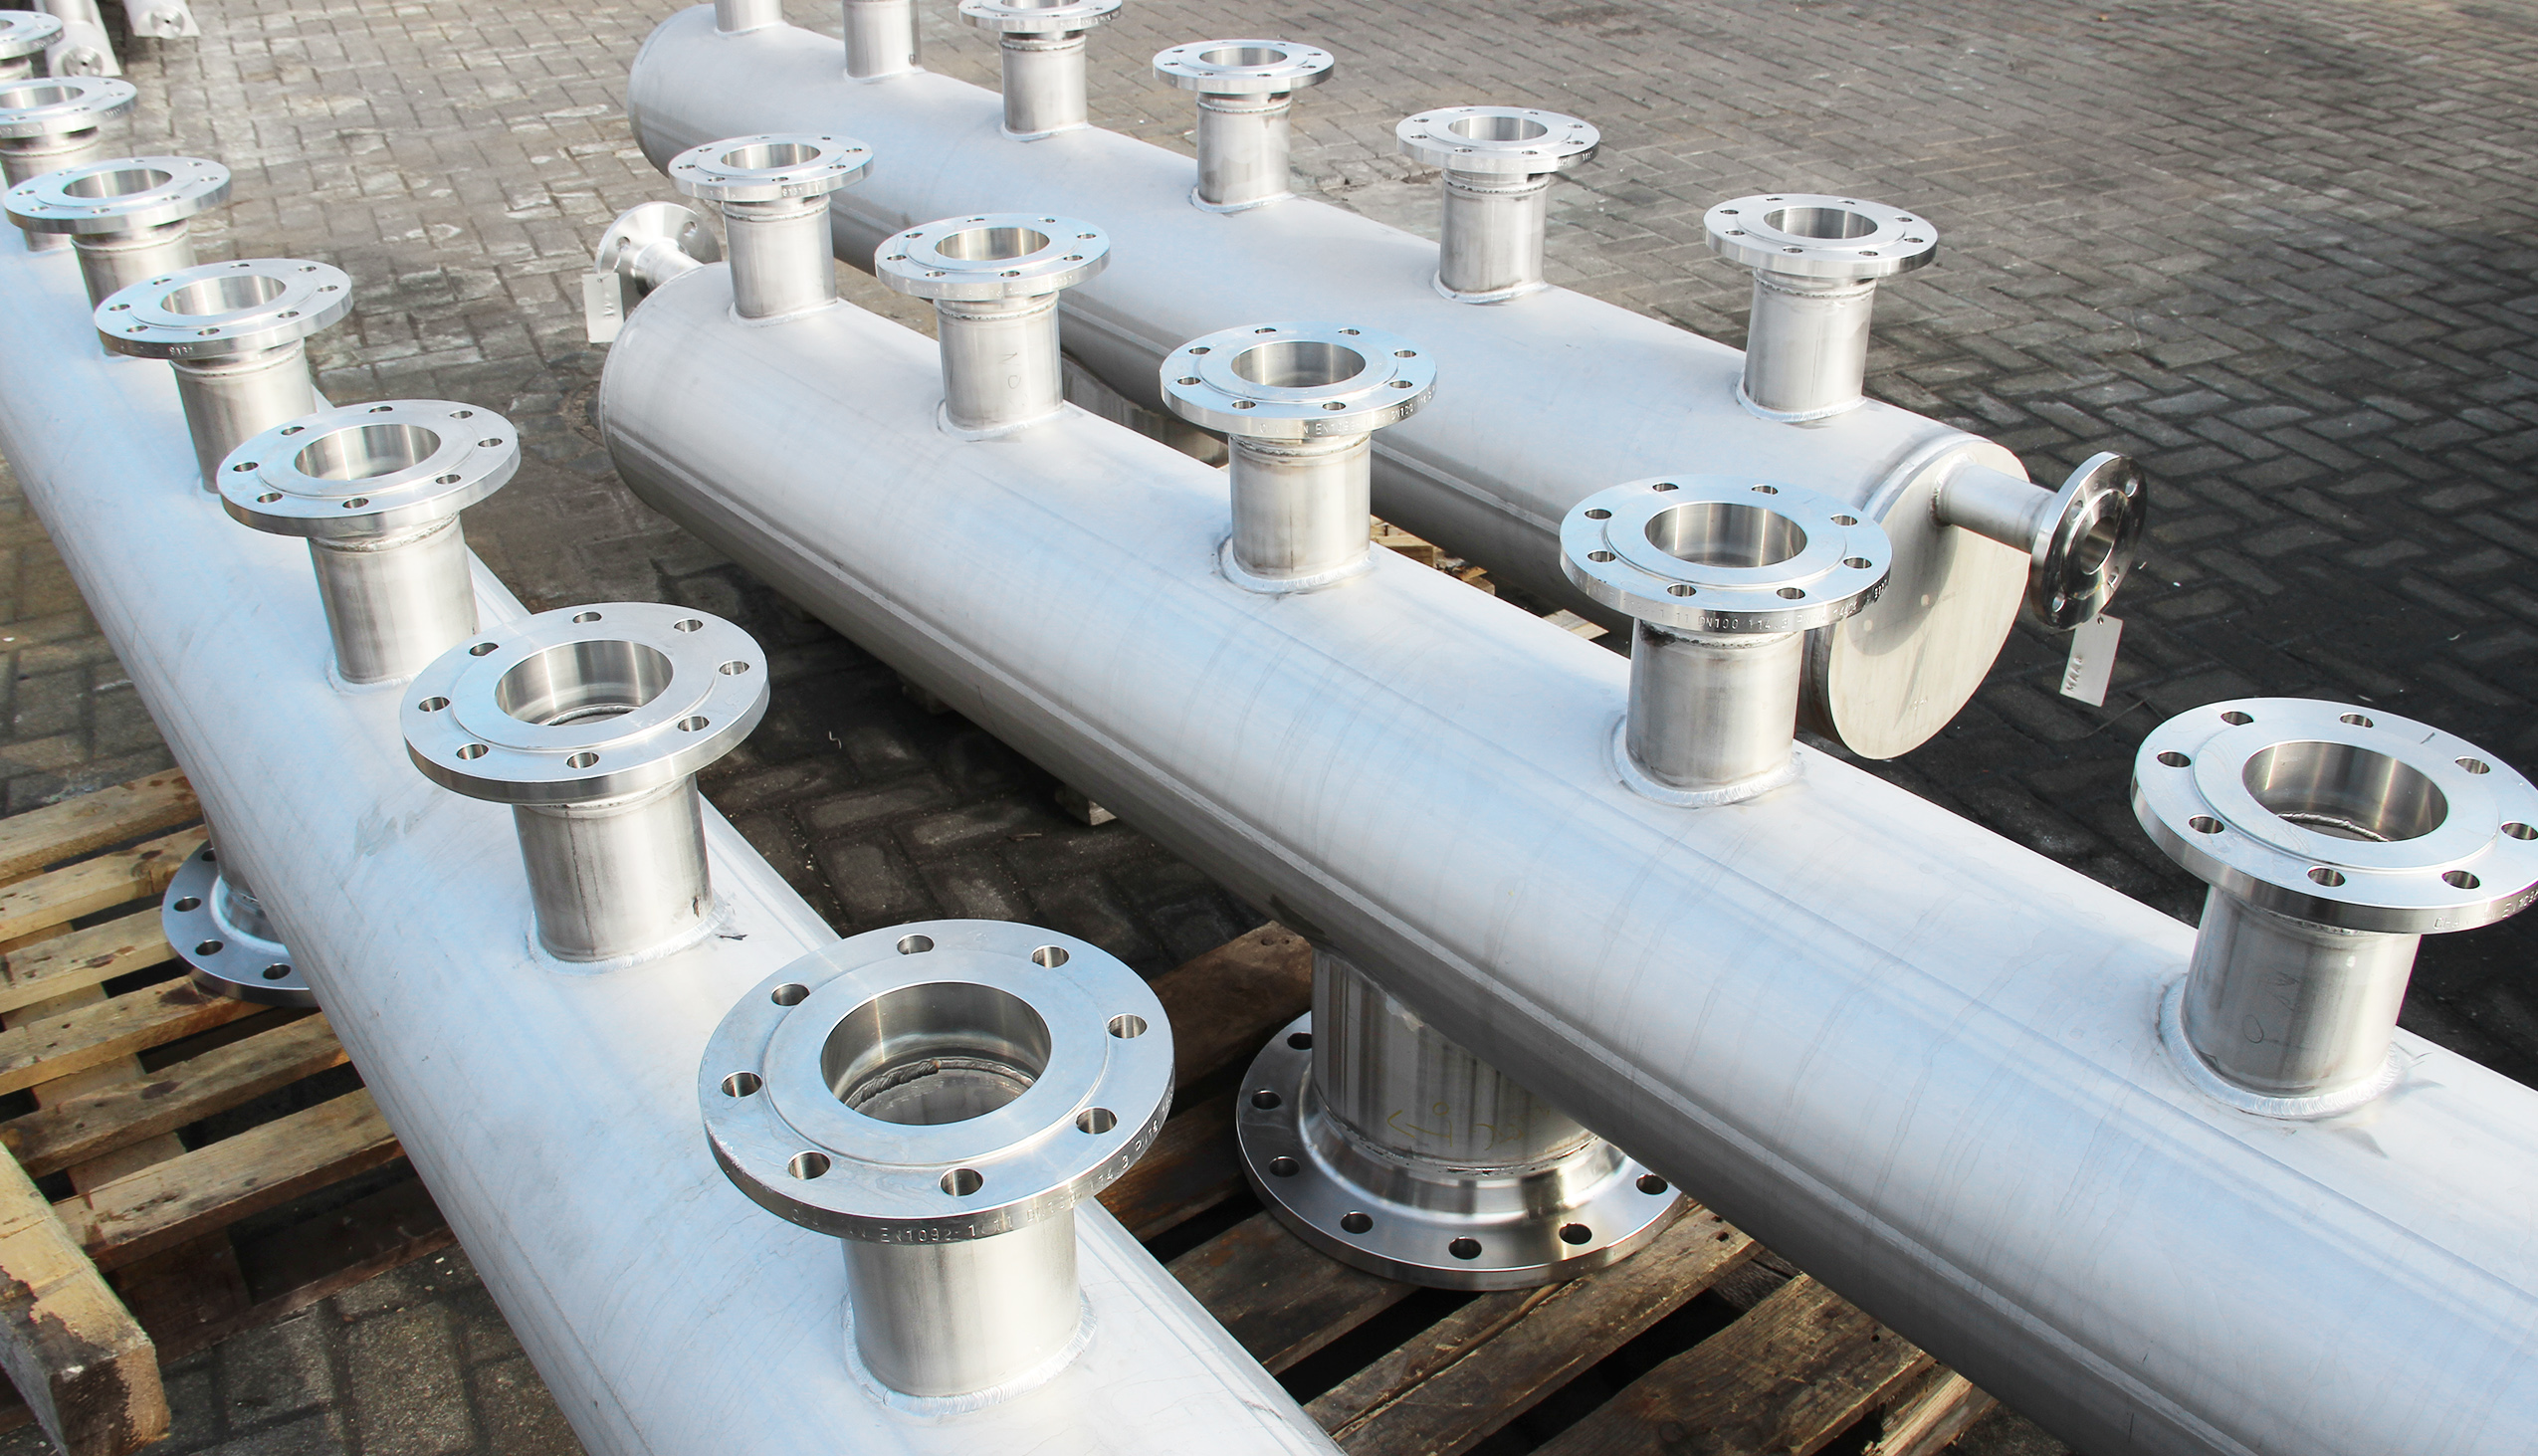 Stainless steel piping and manifolds